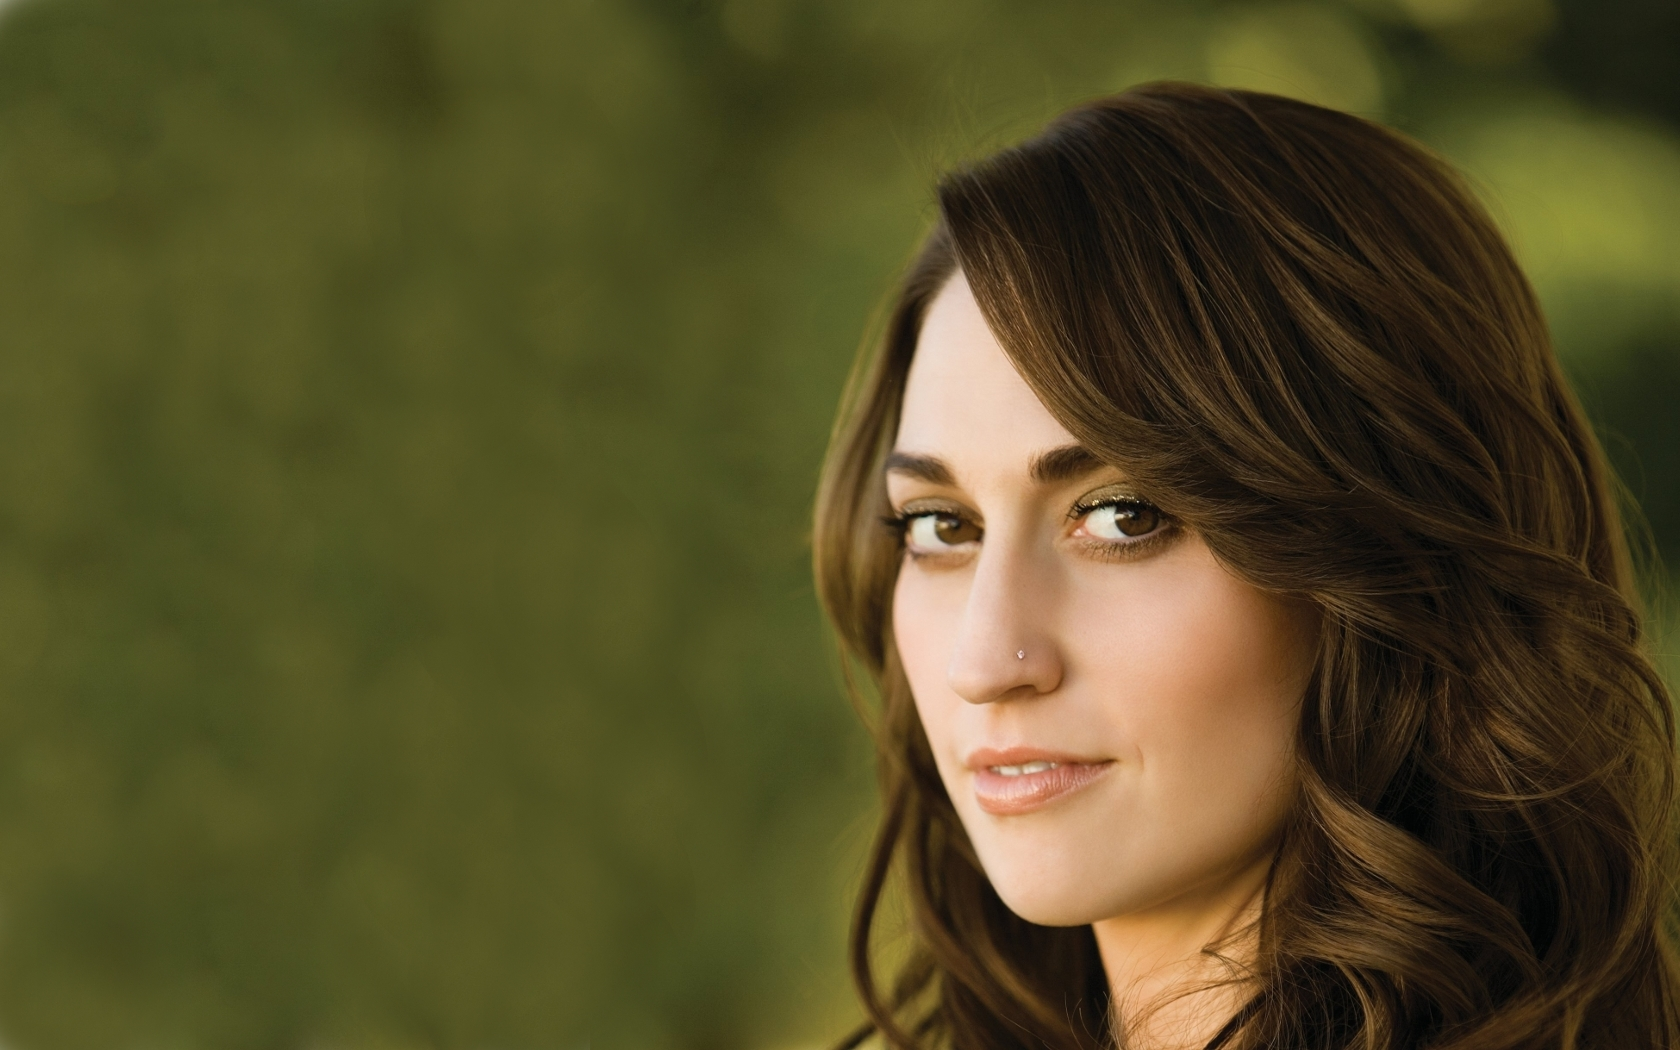 sara bareilles Celebrity HD Wallpaper